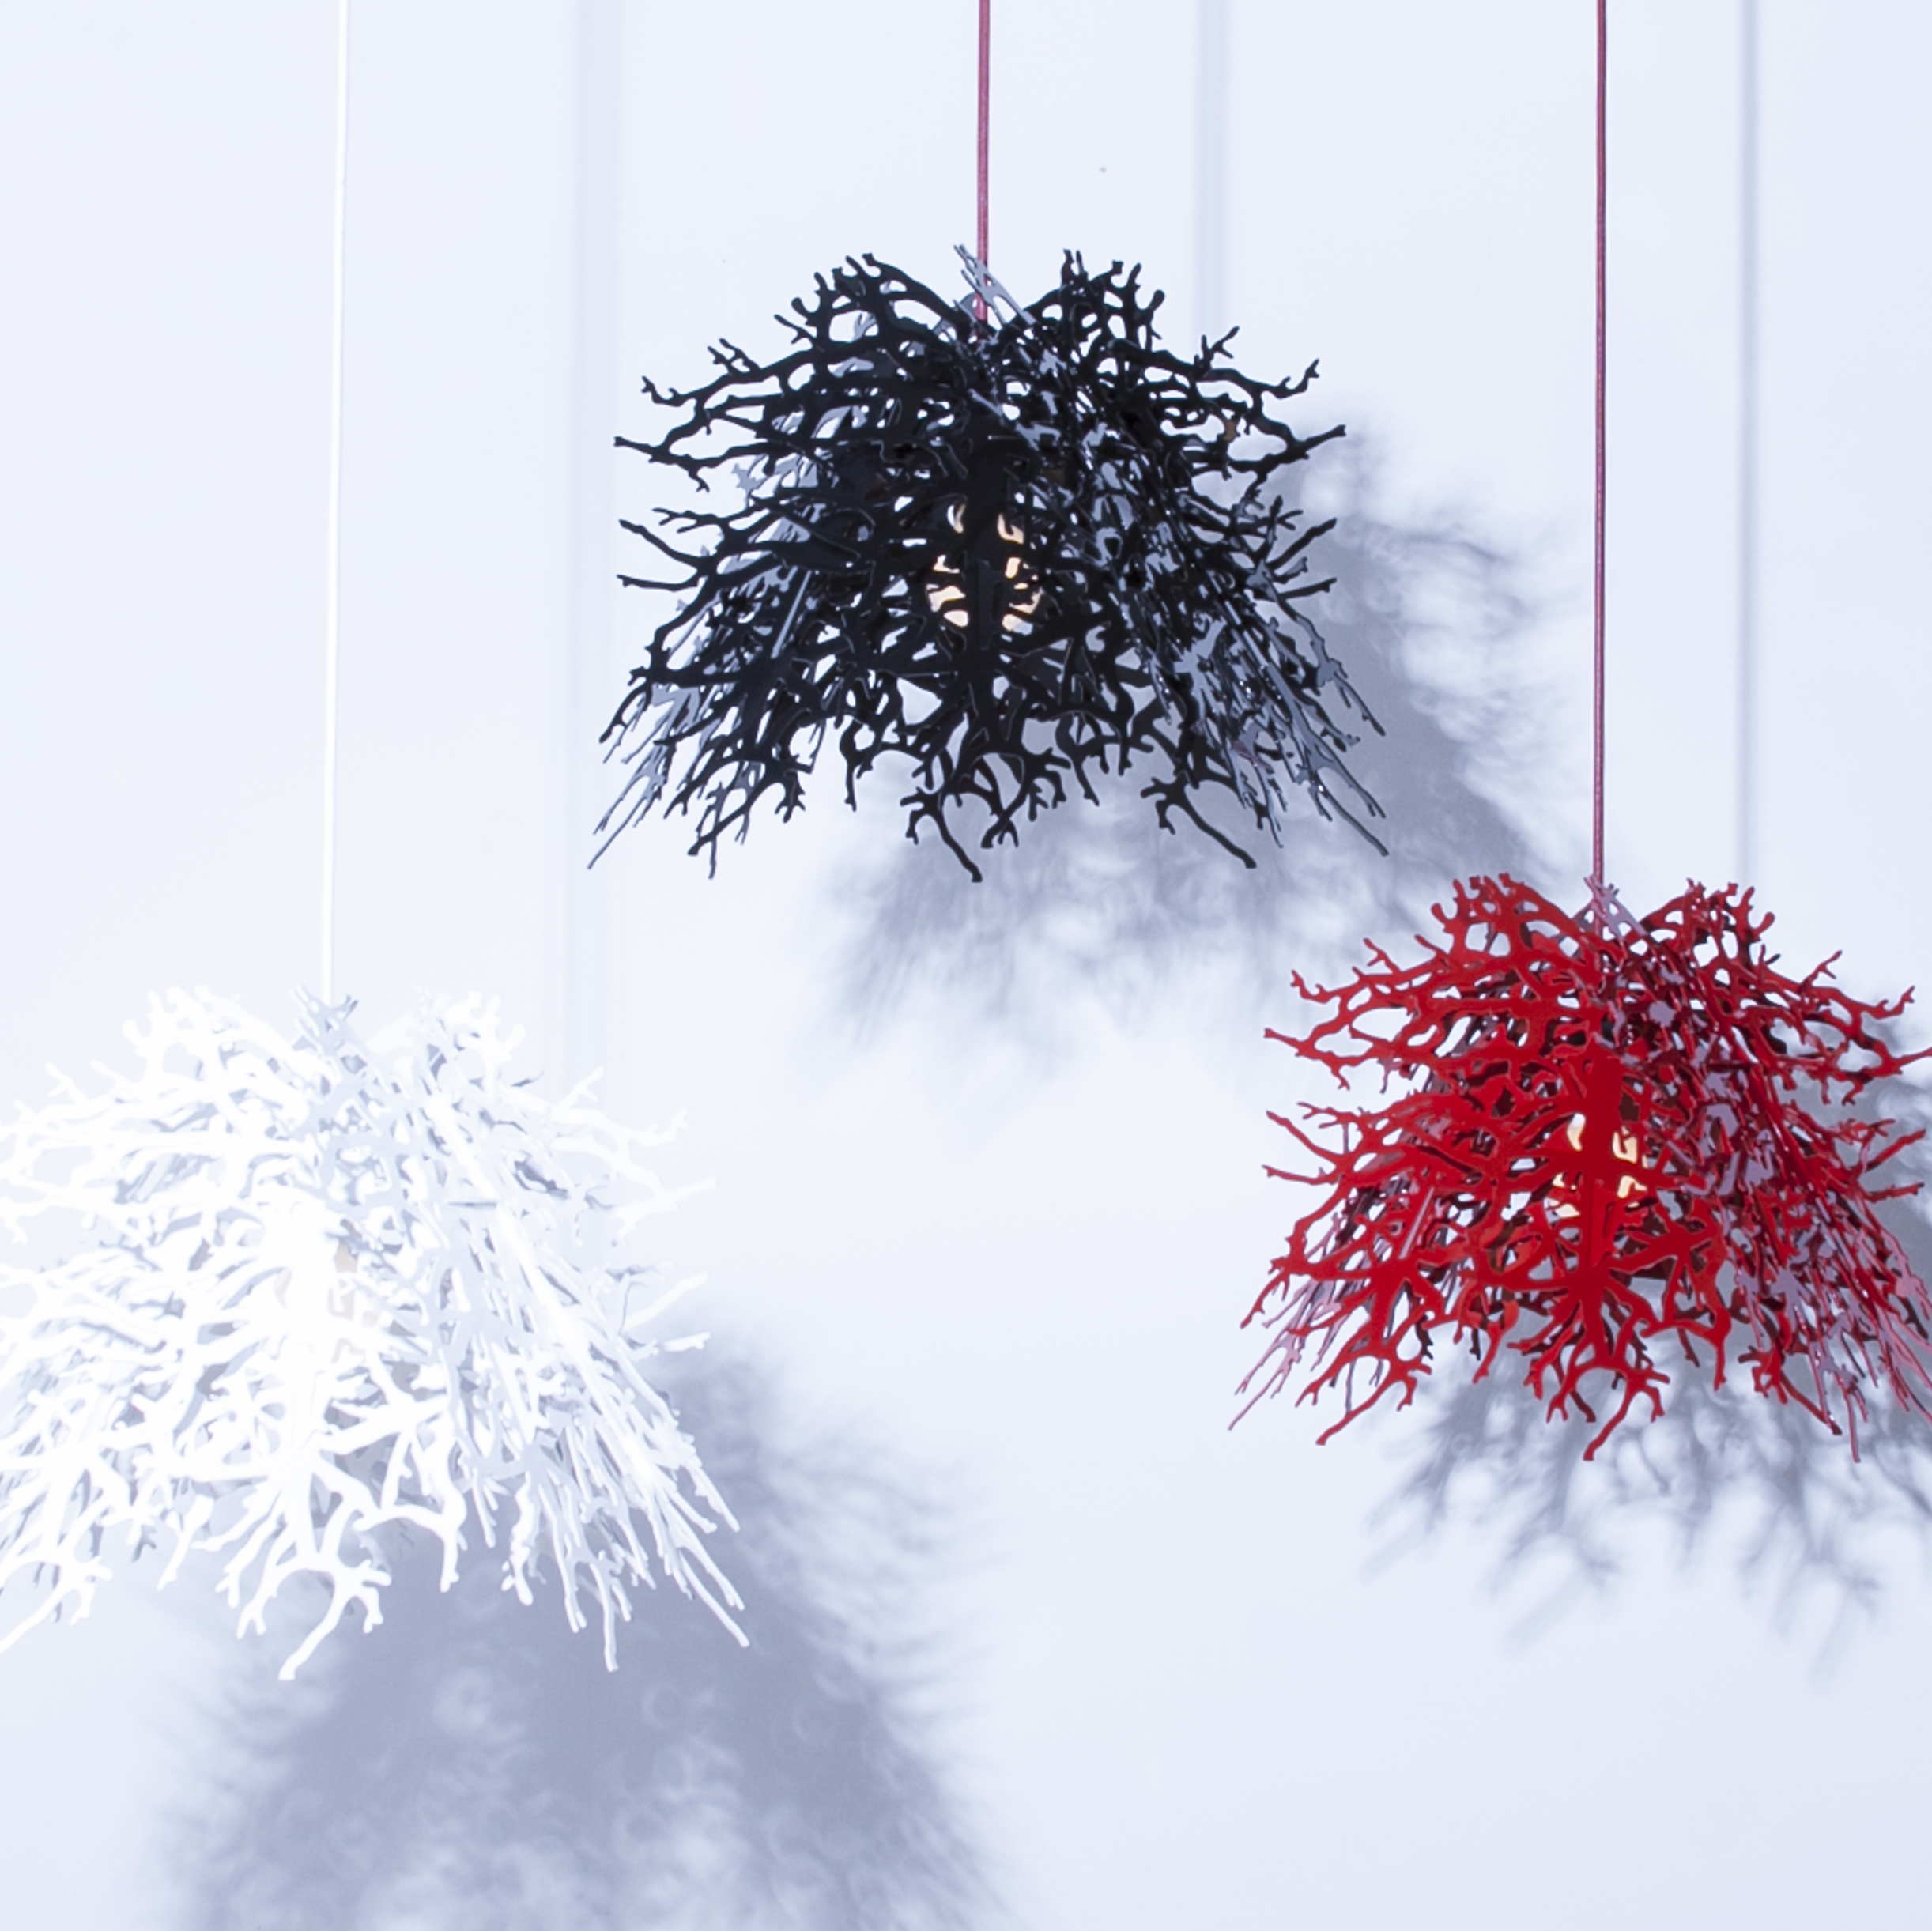 Abstraction / branch / powder coated aluminum $1680-$4600